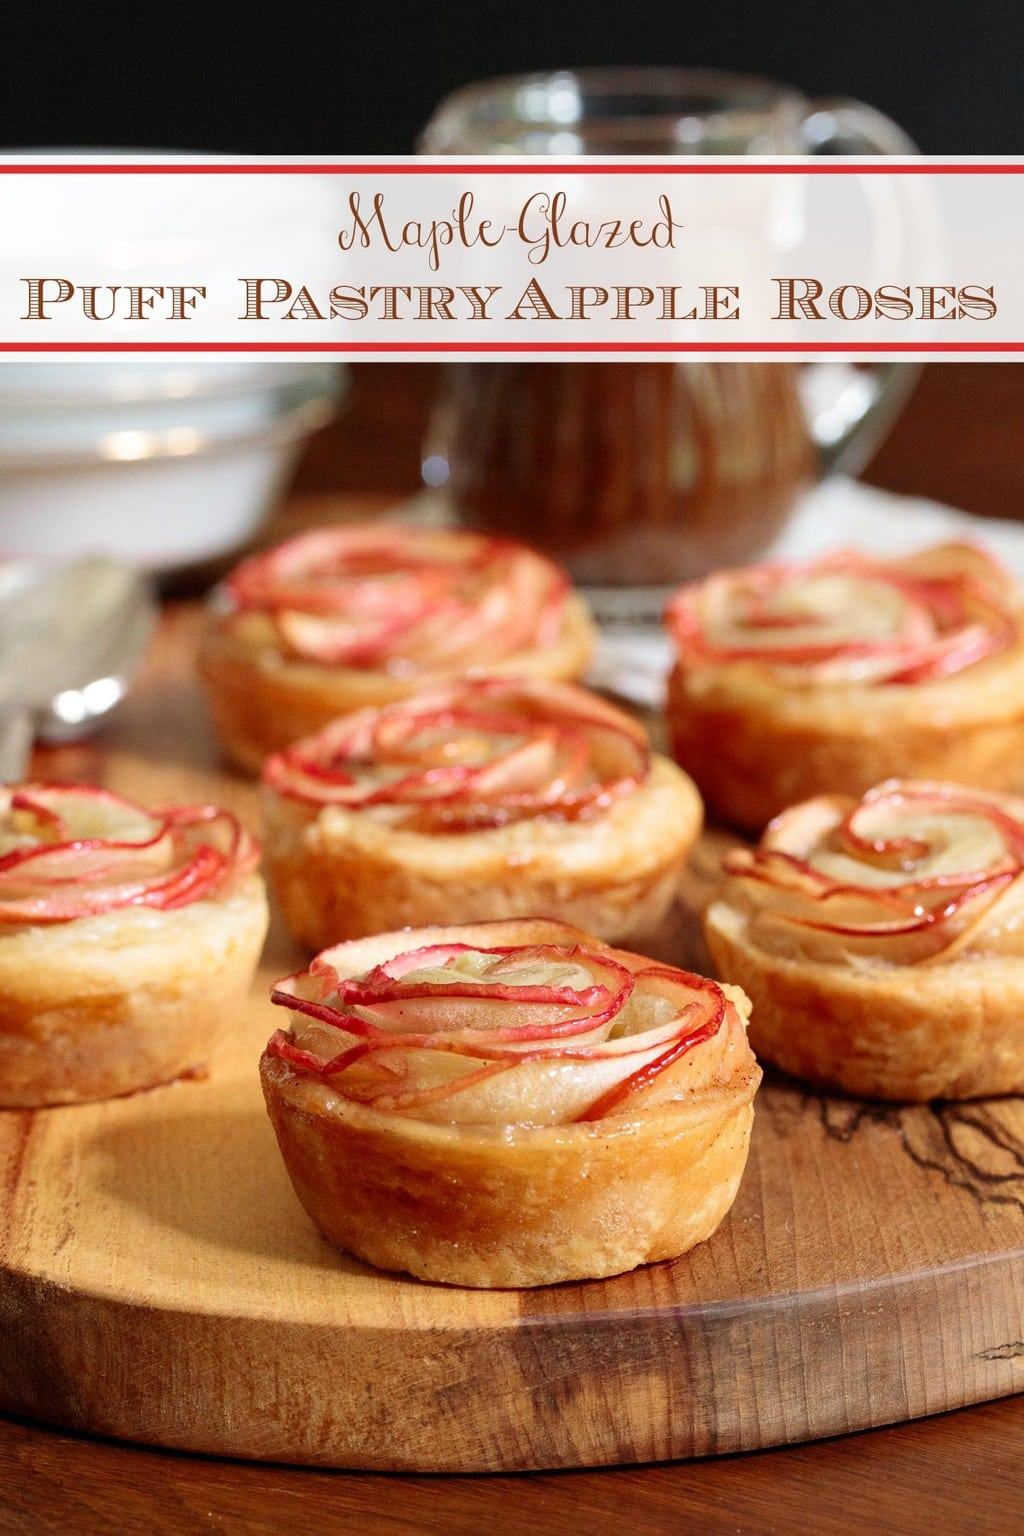 Glazed Puff Pastry Apple Roses